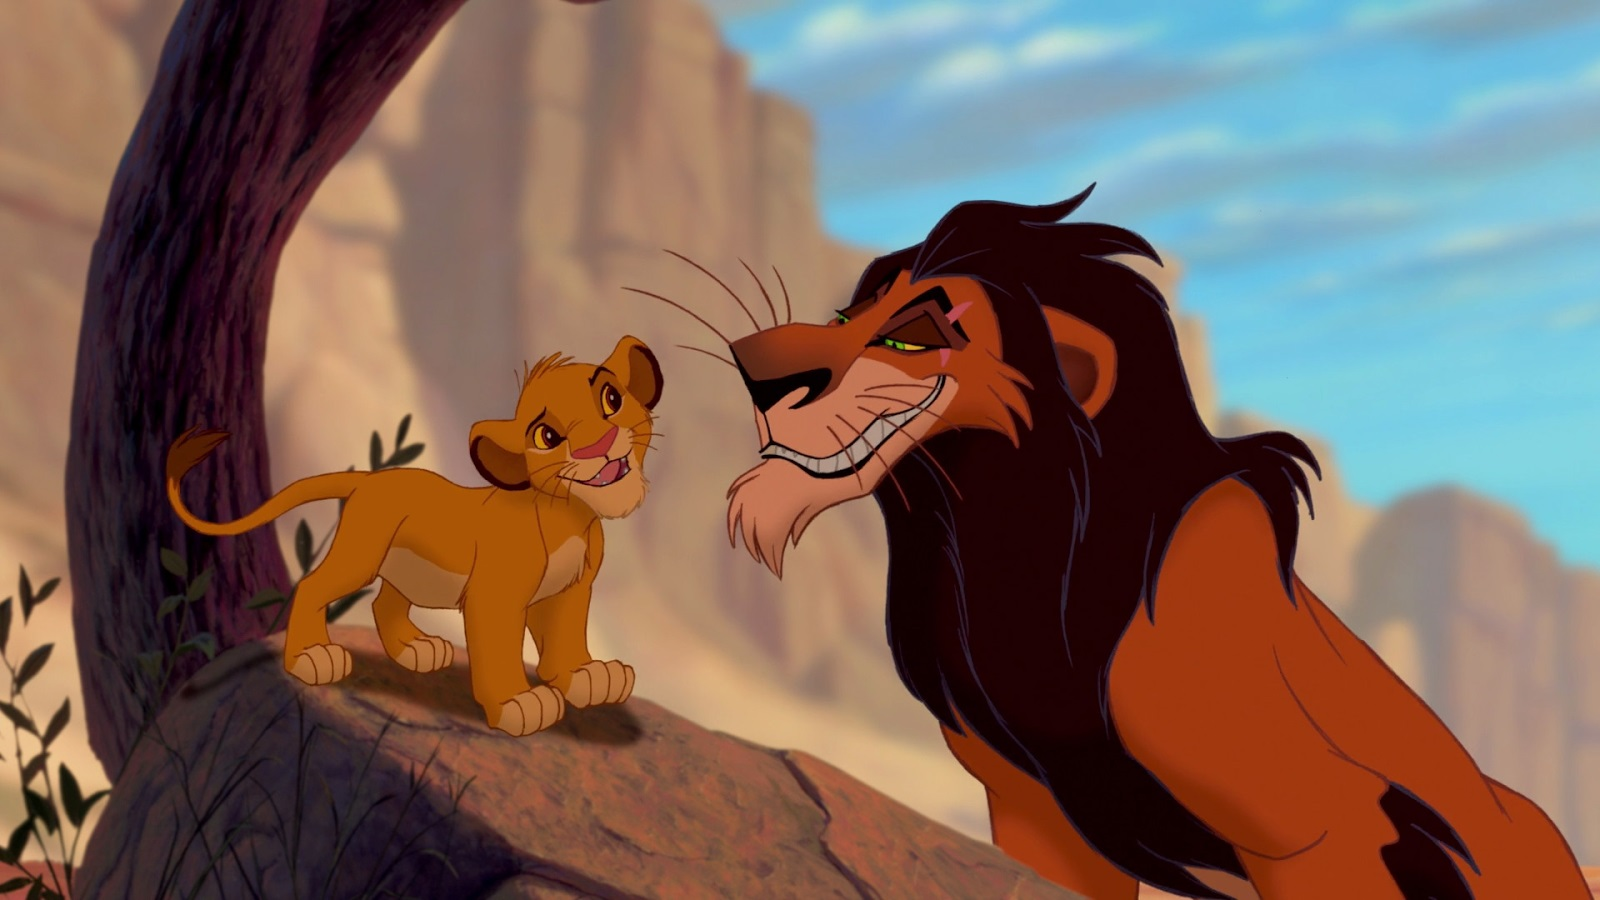 The young Simba and his uncle Scar in The Lion King (1994)